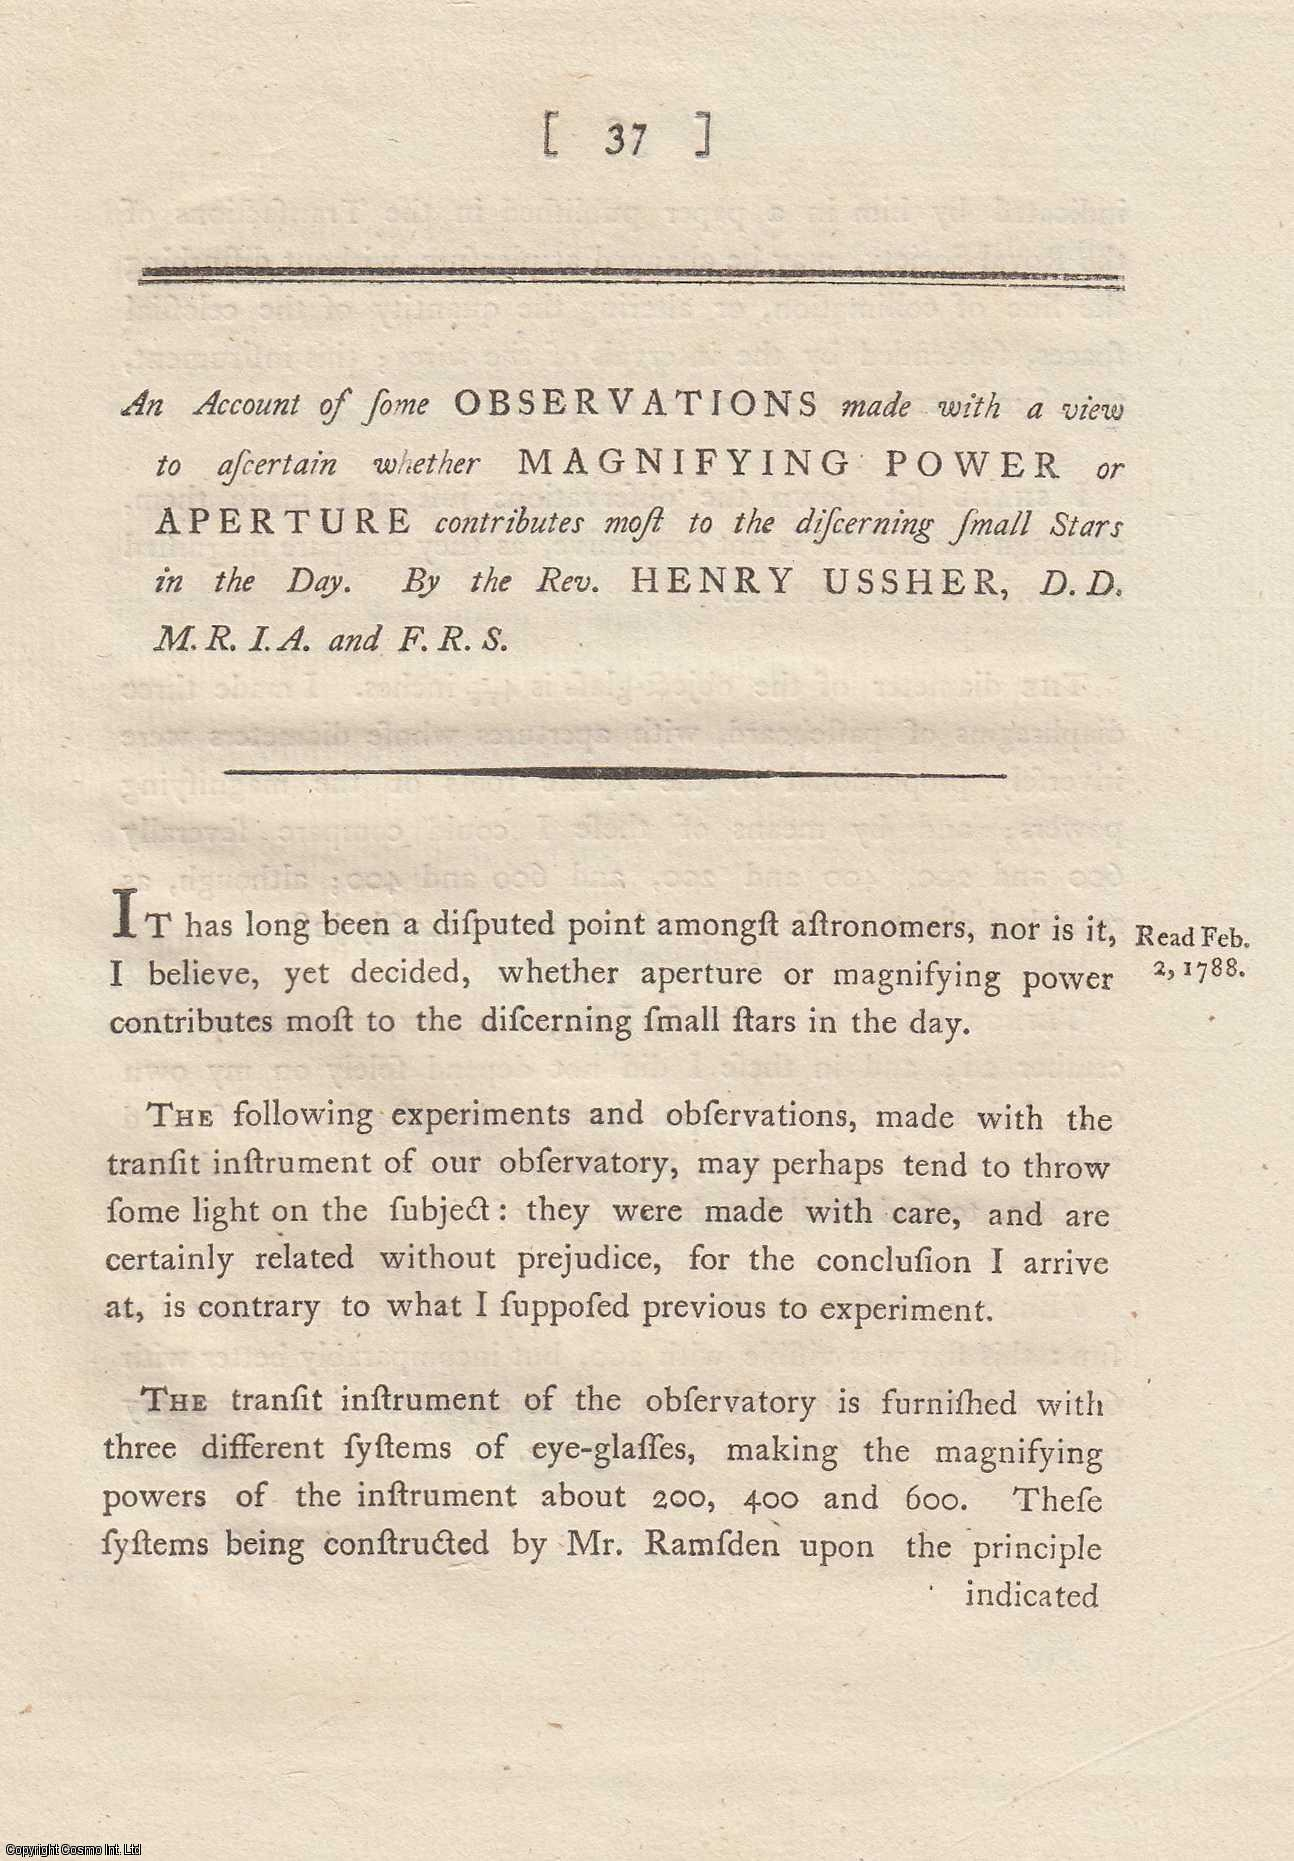 An Account of some Observations made with a view to ascertain whether Magnifying Power or Aperture contributes most to the discerning small Stars in the Day.  From Transactions of the Royal Irish Academy., Ussher, Rev. Henry.